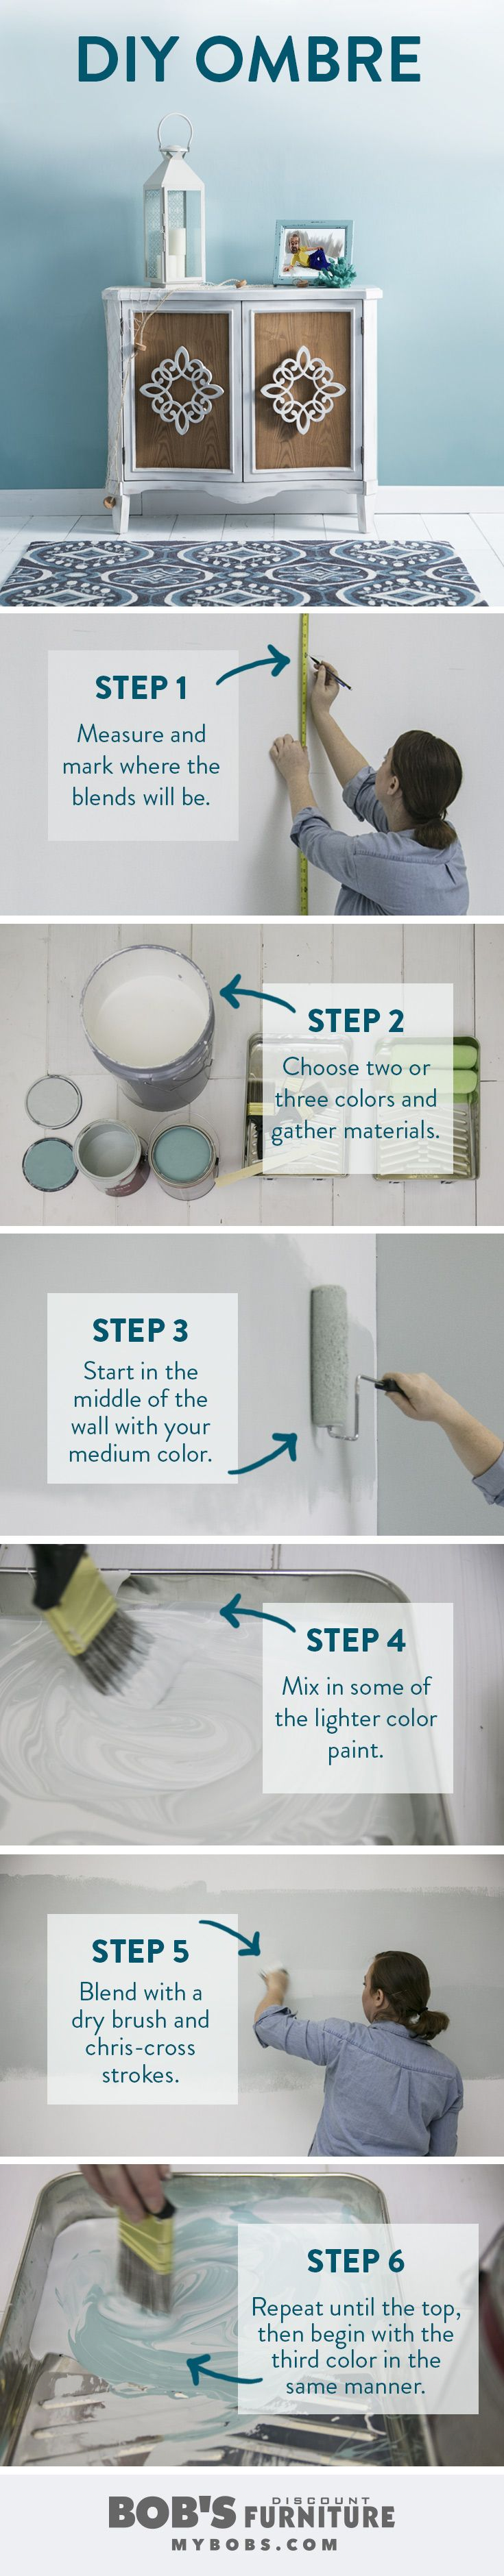 Ombre technique supplies and tips from sherwin williams - Best 25 Paint Techniques Wall Ideas On Pinterest Textured Painted Walls Wall Painting For Bedroom And Wall Painting Colors